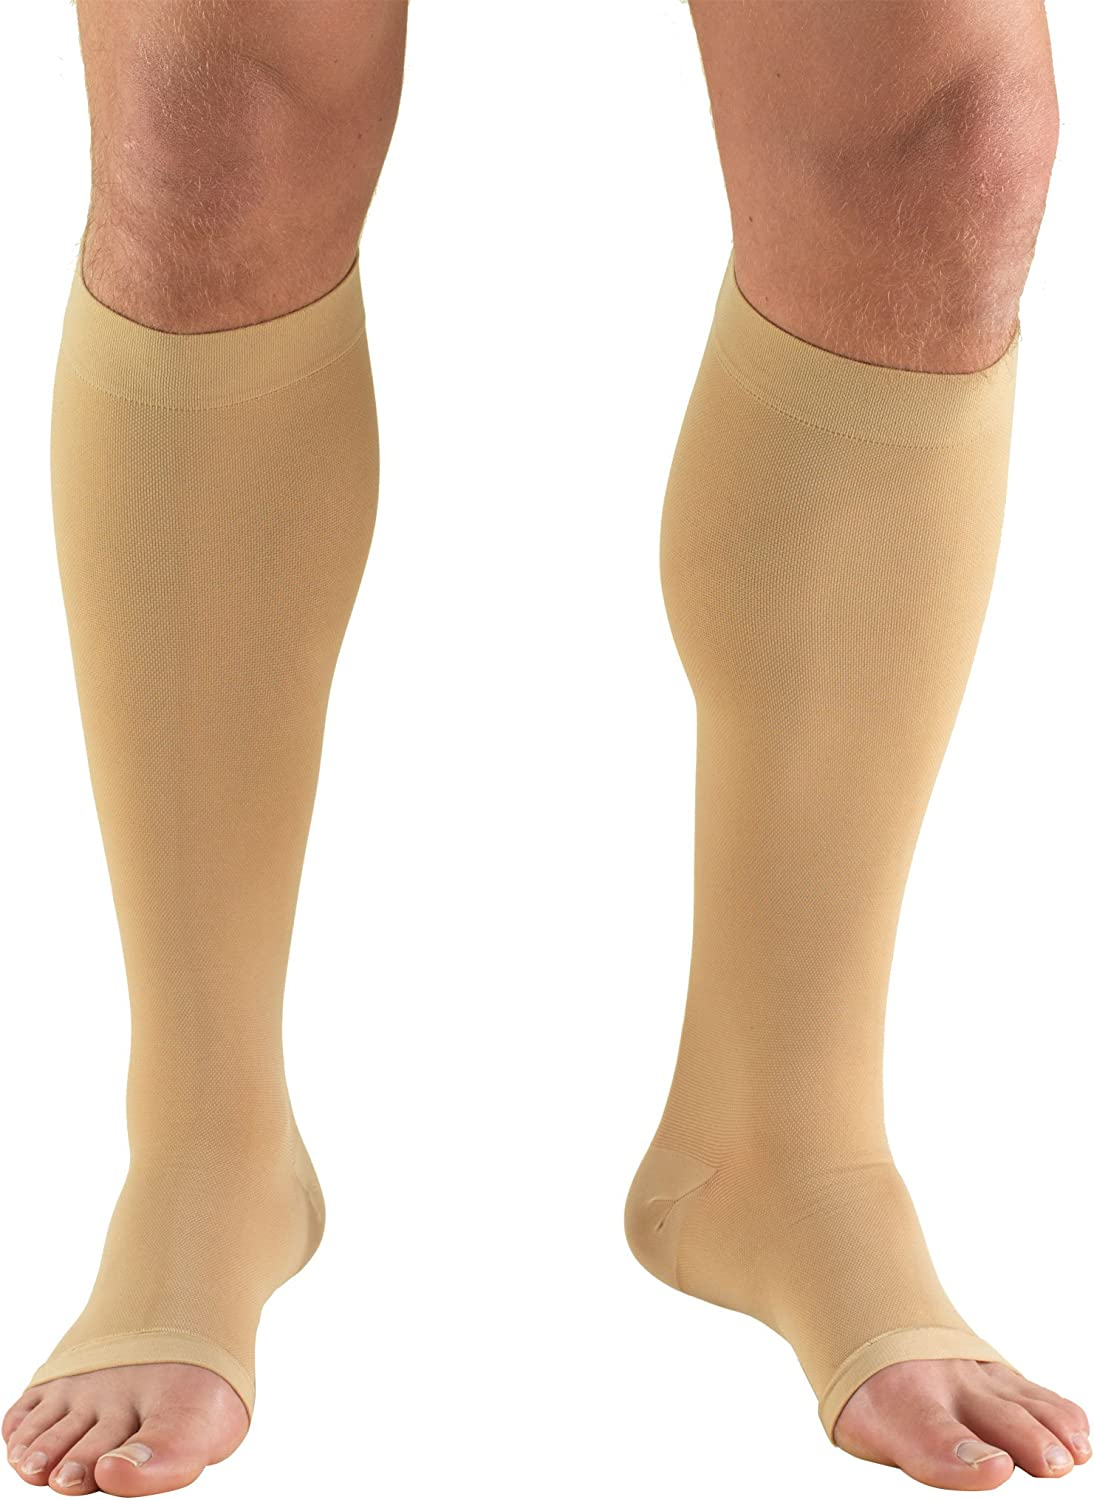 Truform 20-30 Outlet ☆ Free Shipping outlet mmHg Compression Stocking Men Women for and Knee